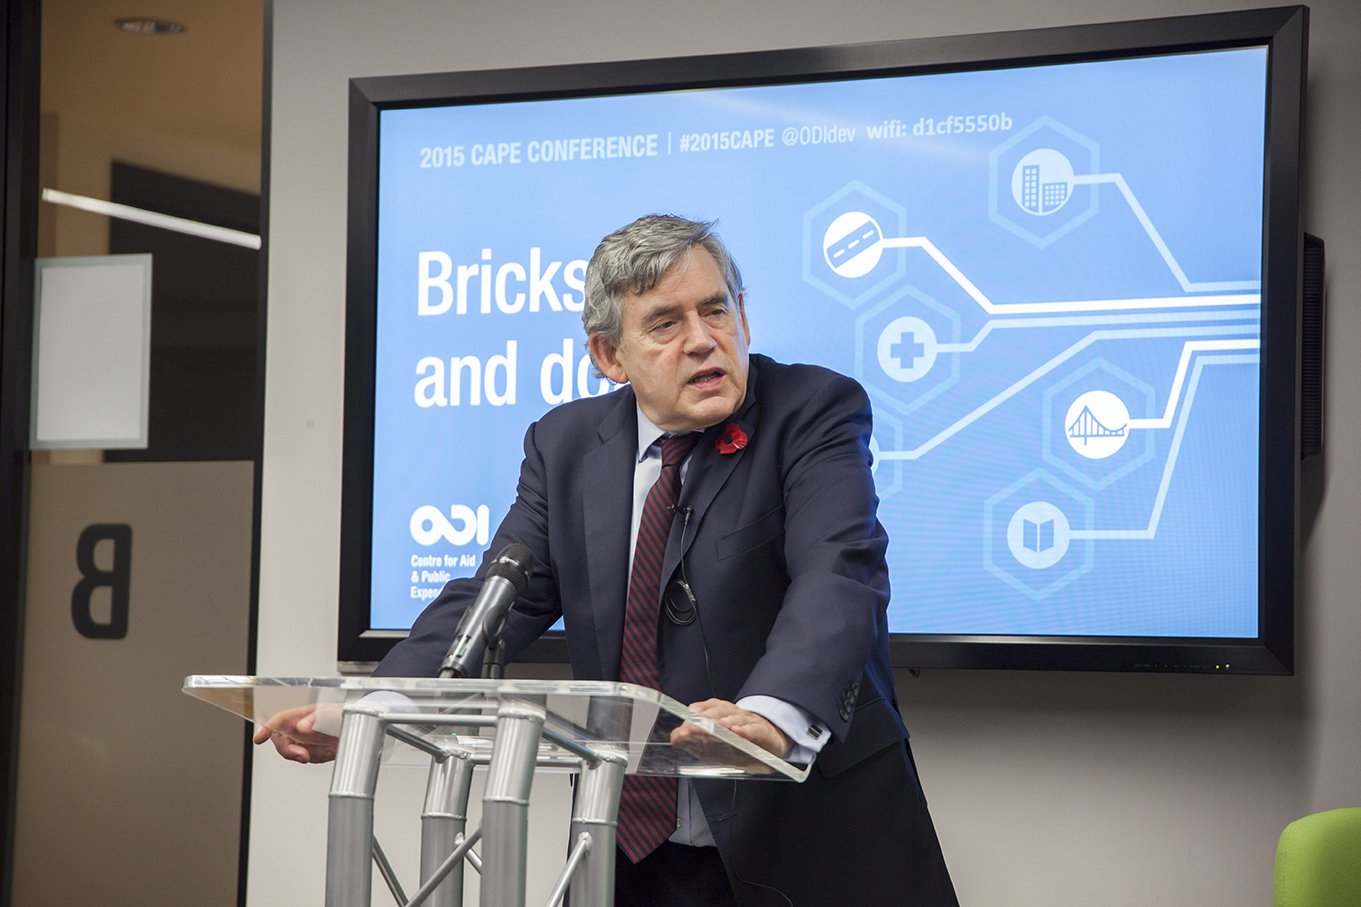 2015 CAPE conference: bricks and dollars